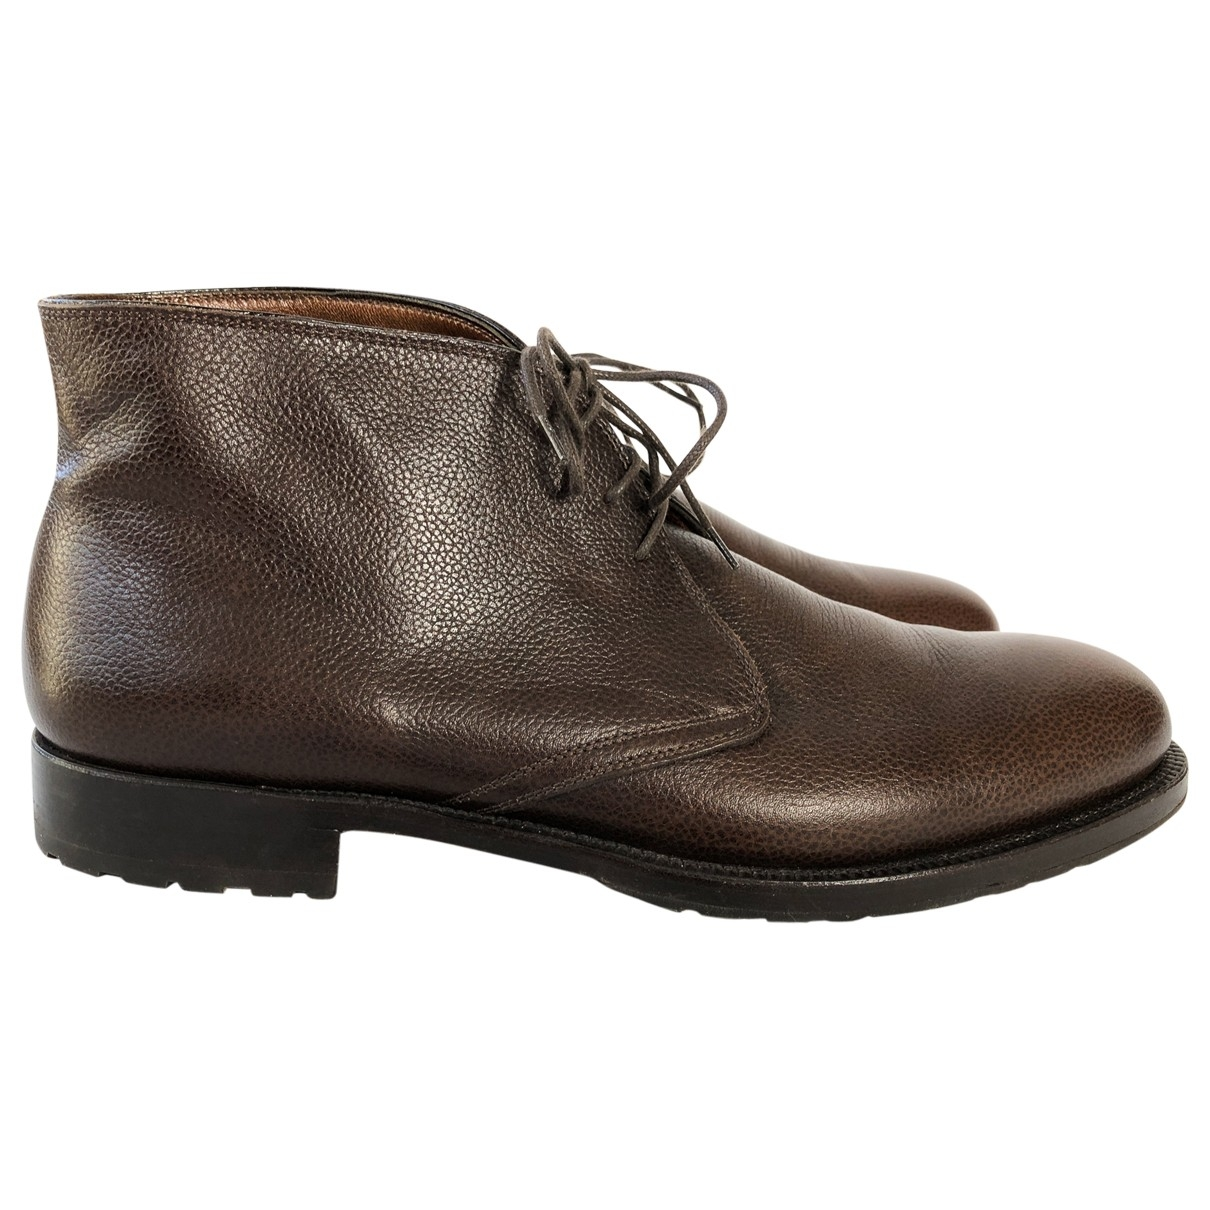 Fratelli Rossetti \N Brown Leather Boots for Men 7 UK